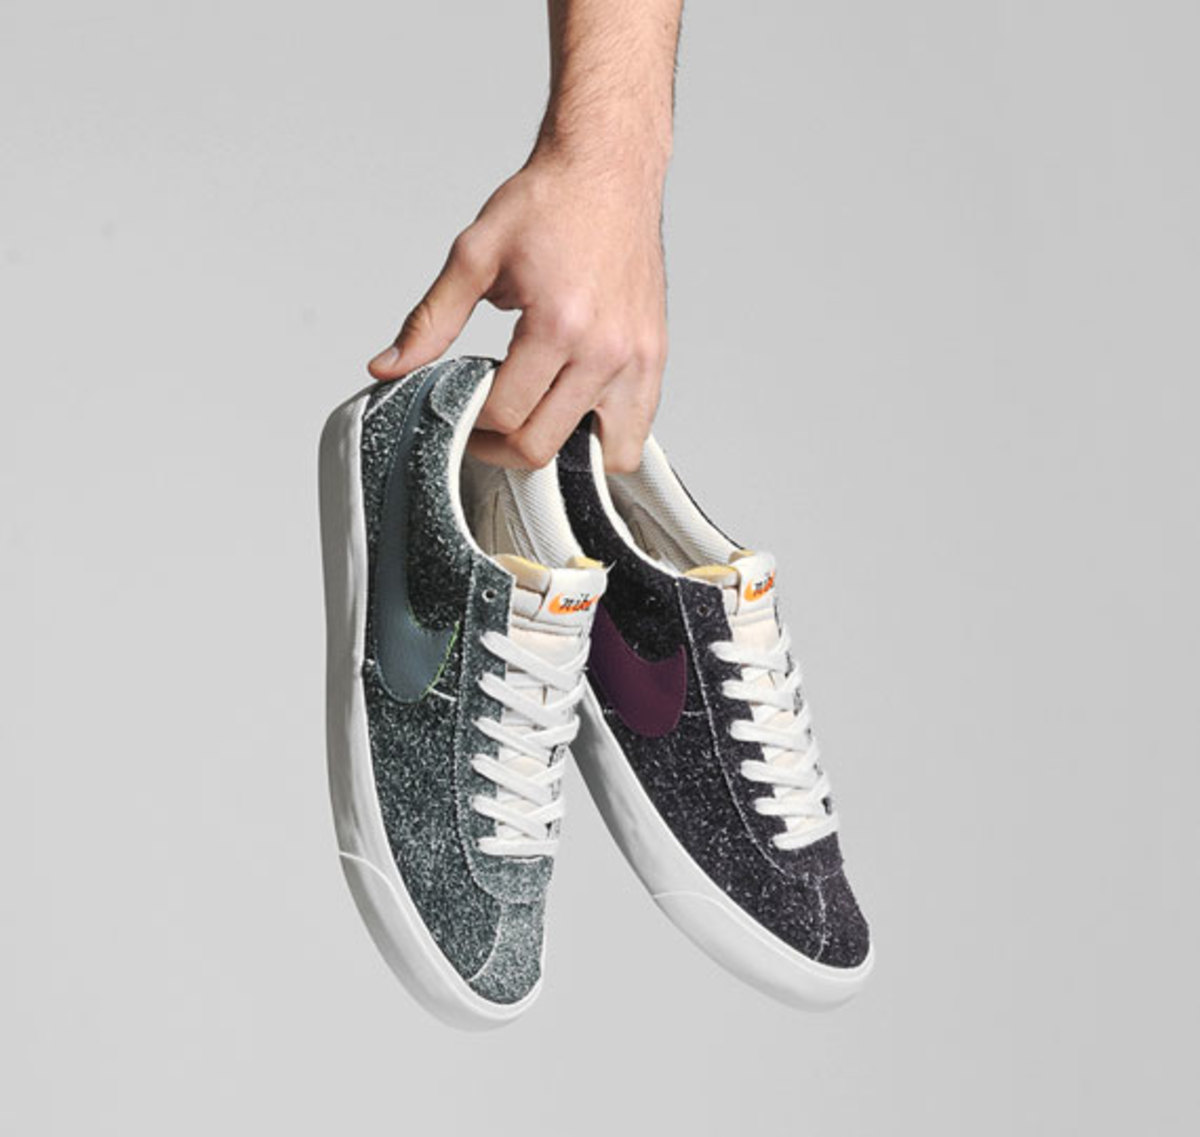 nike-bruin-vntg-spring-2013-size-exclusive-02